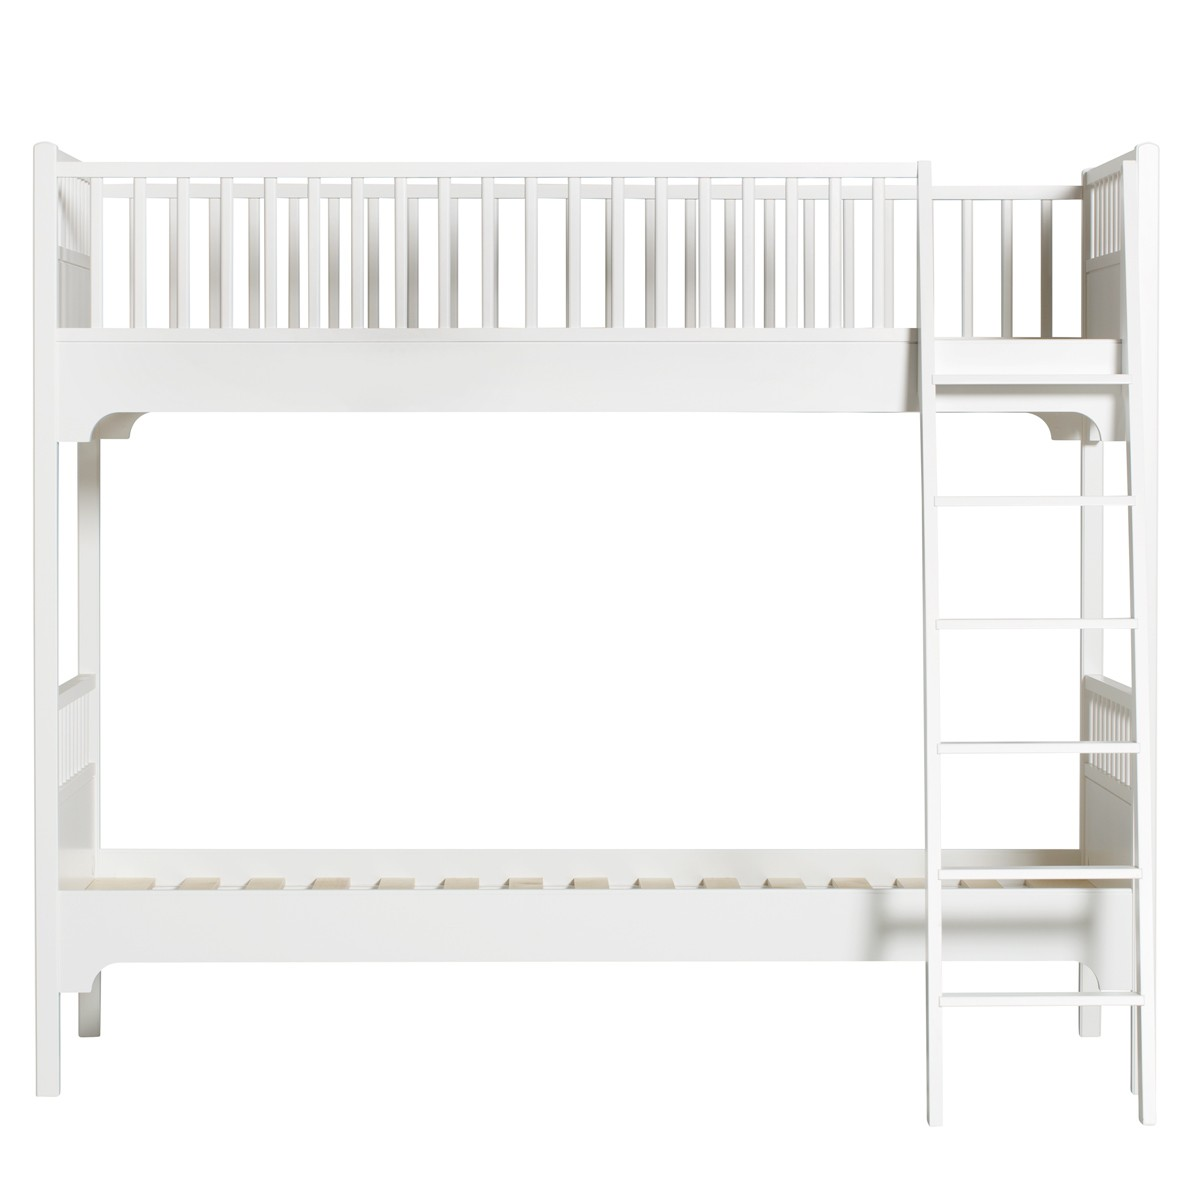 Lit superposé Seaside - Echelle inclinée Blanc Oliver Furniture